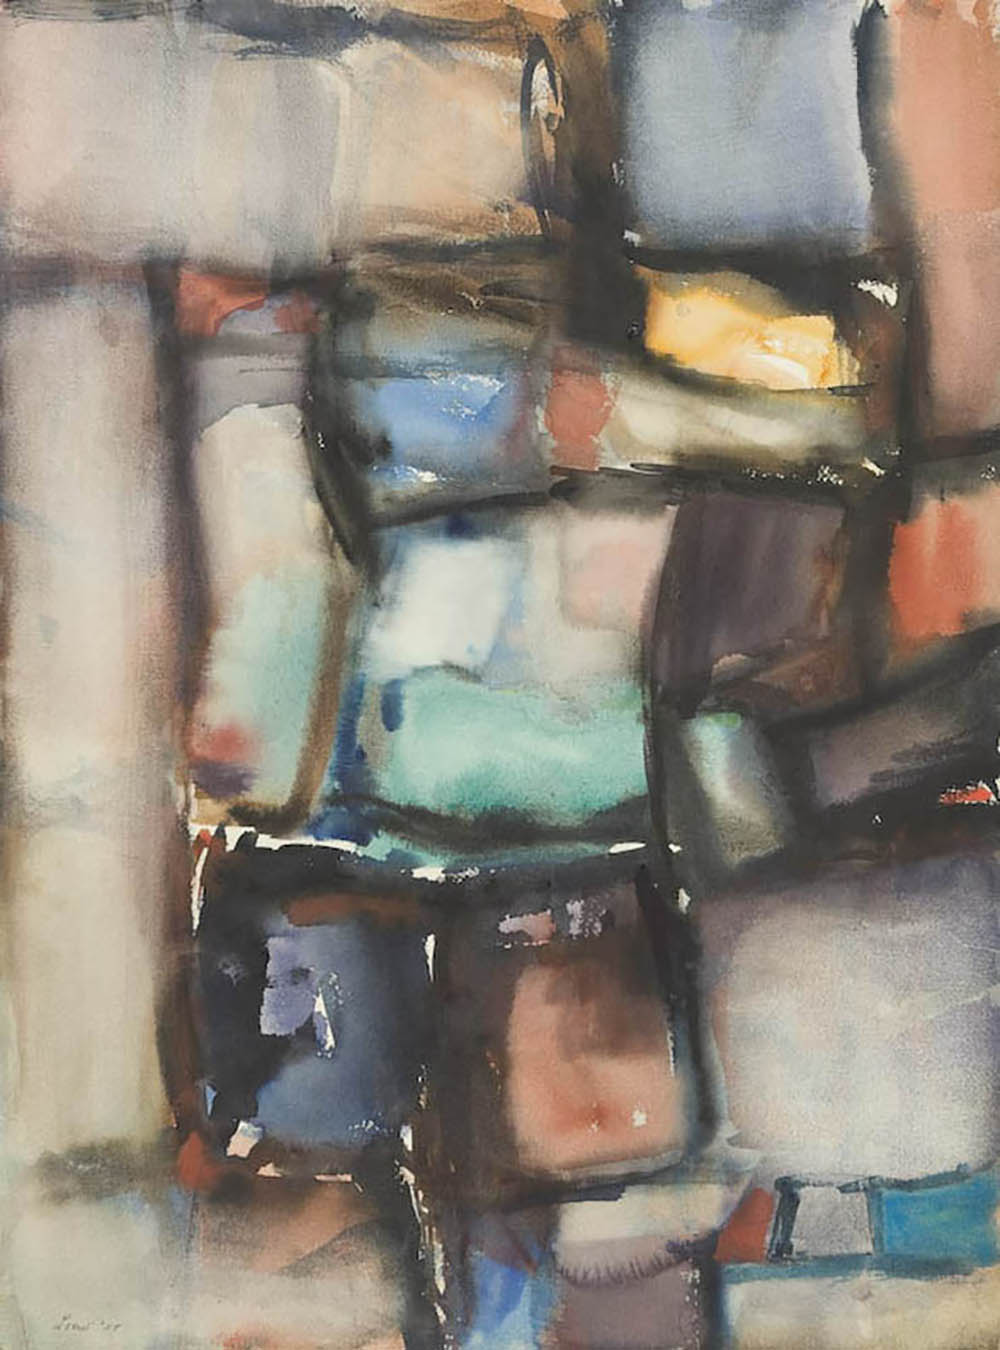 Untitled,   Watercolor on paper, 1959, 30 3/8 x 22 1/4 inches